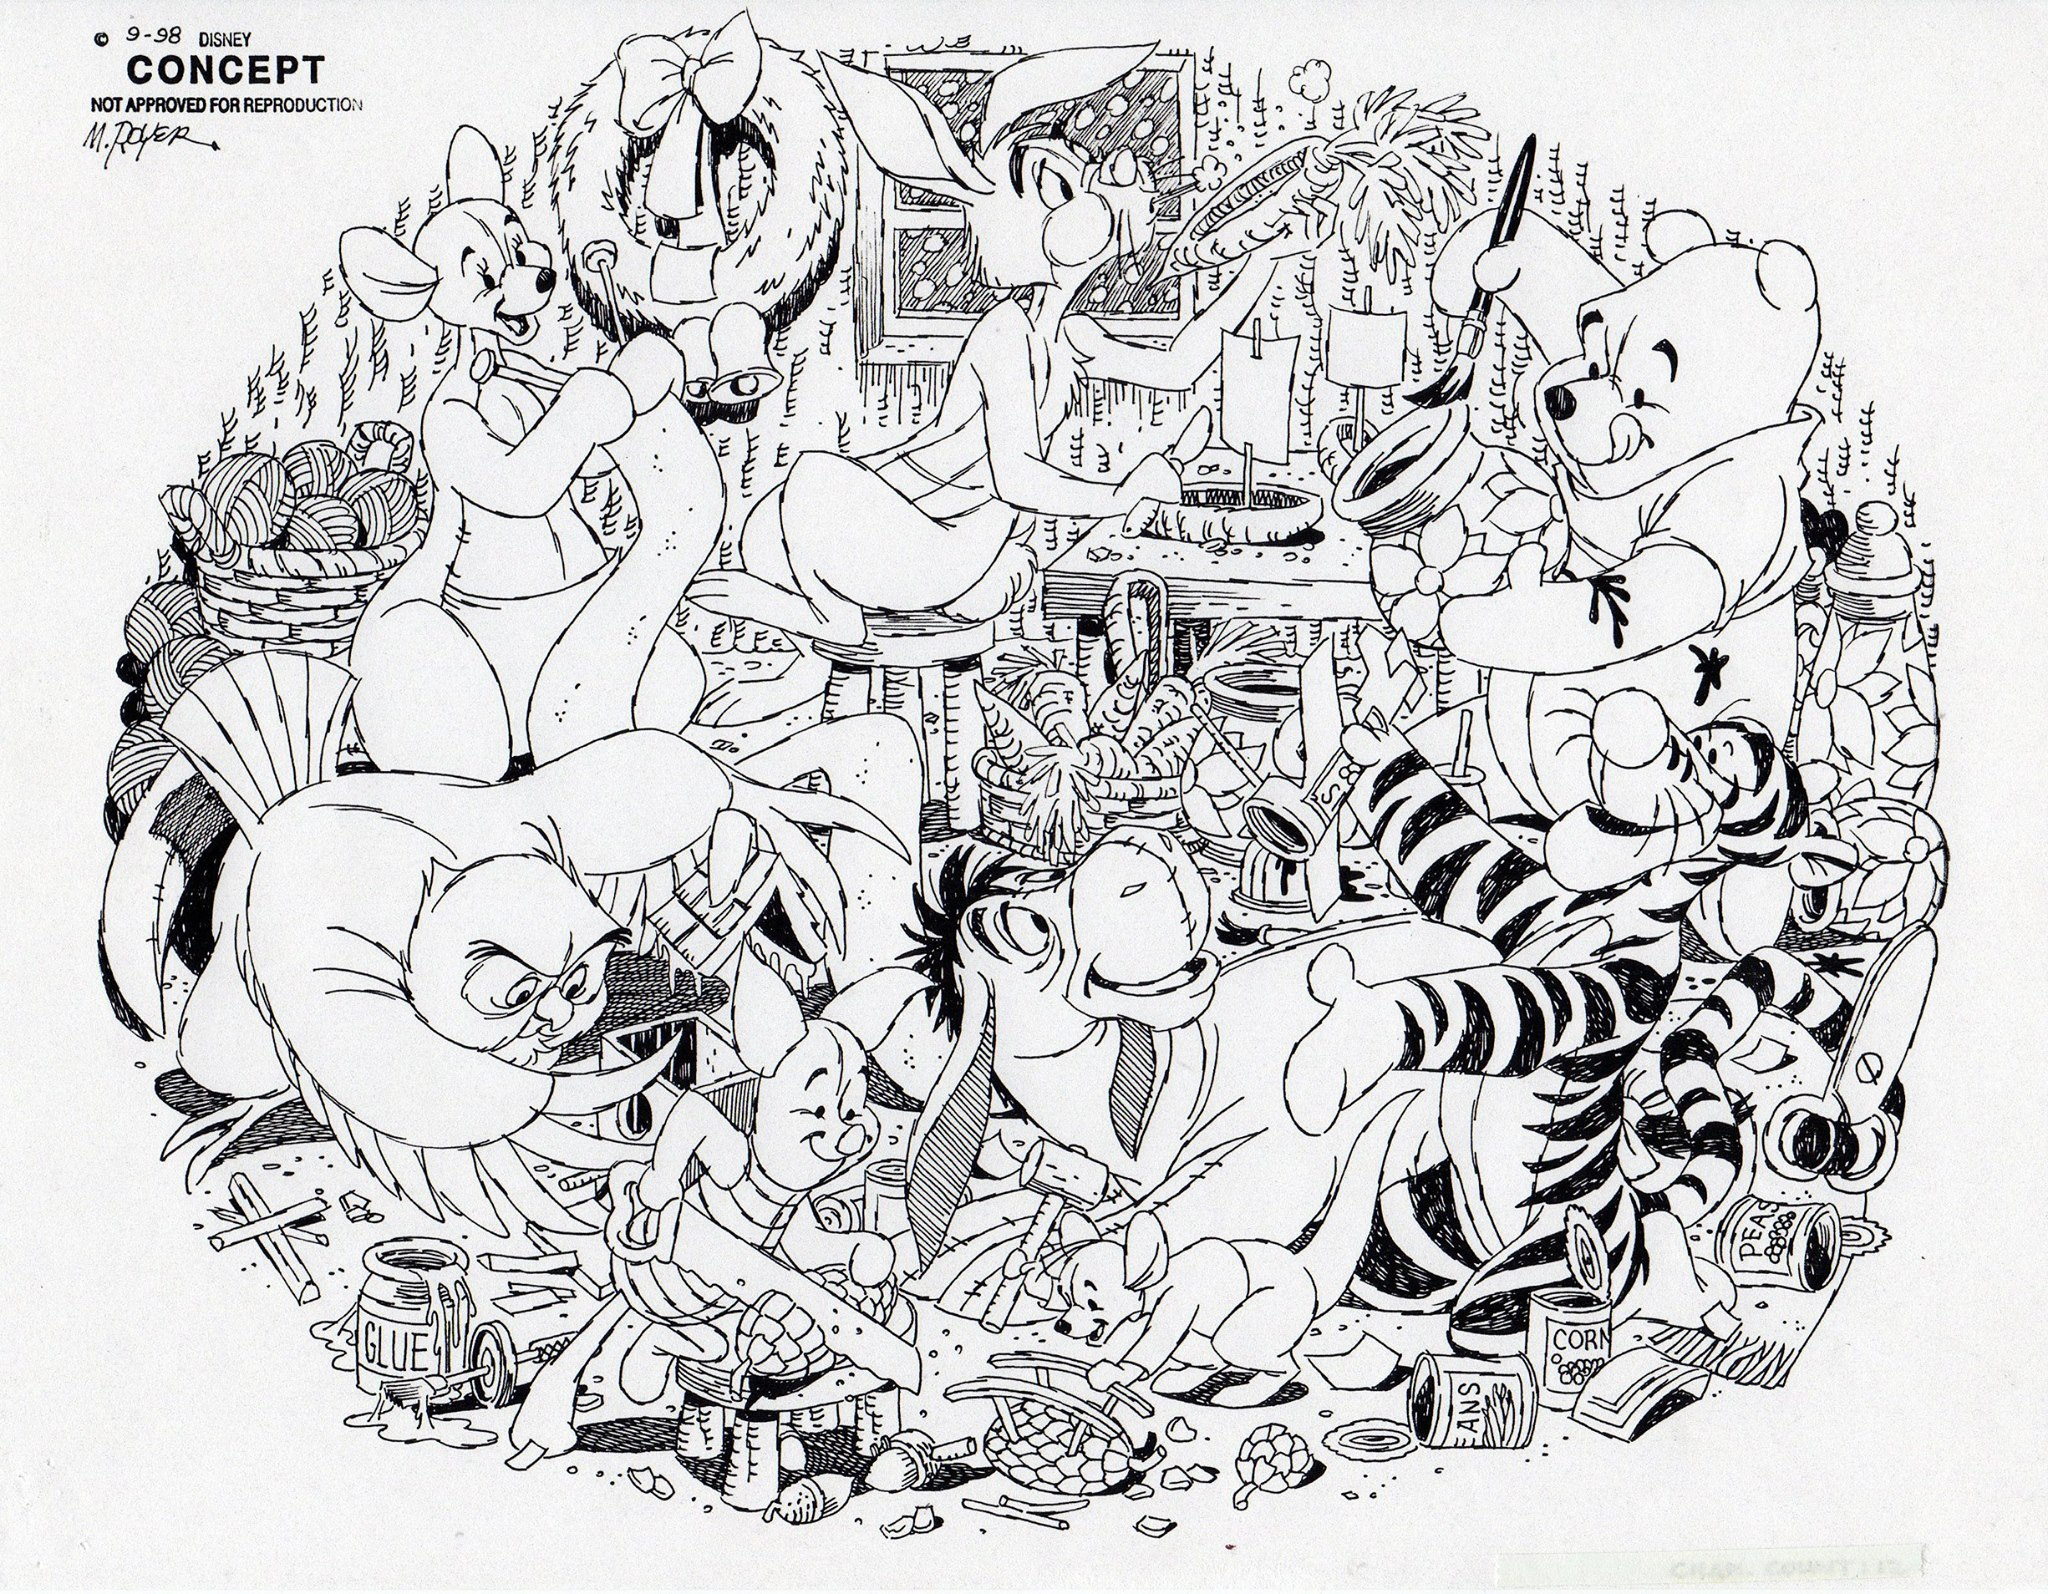 Disney Store Concept art from September 1998, drawn by Mike Royer.